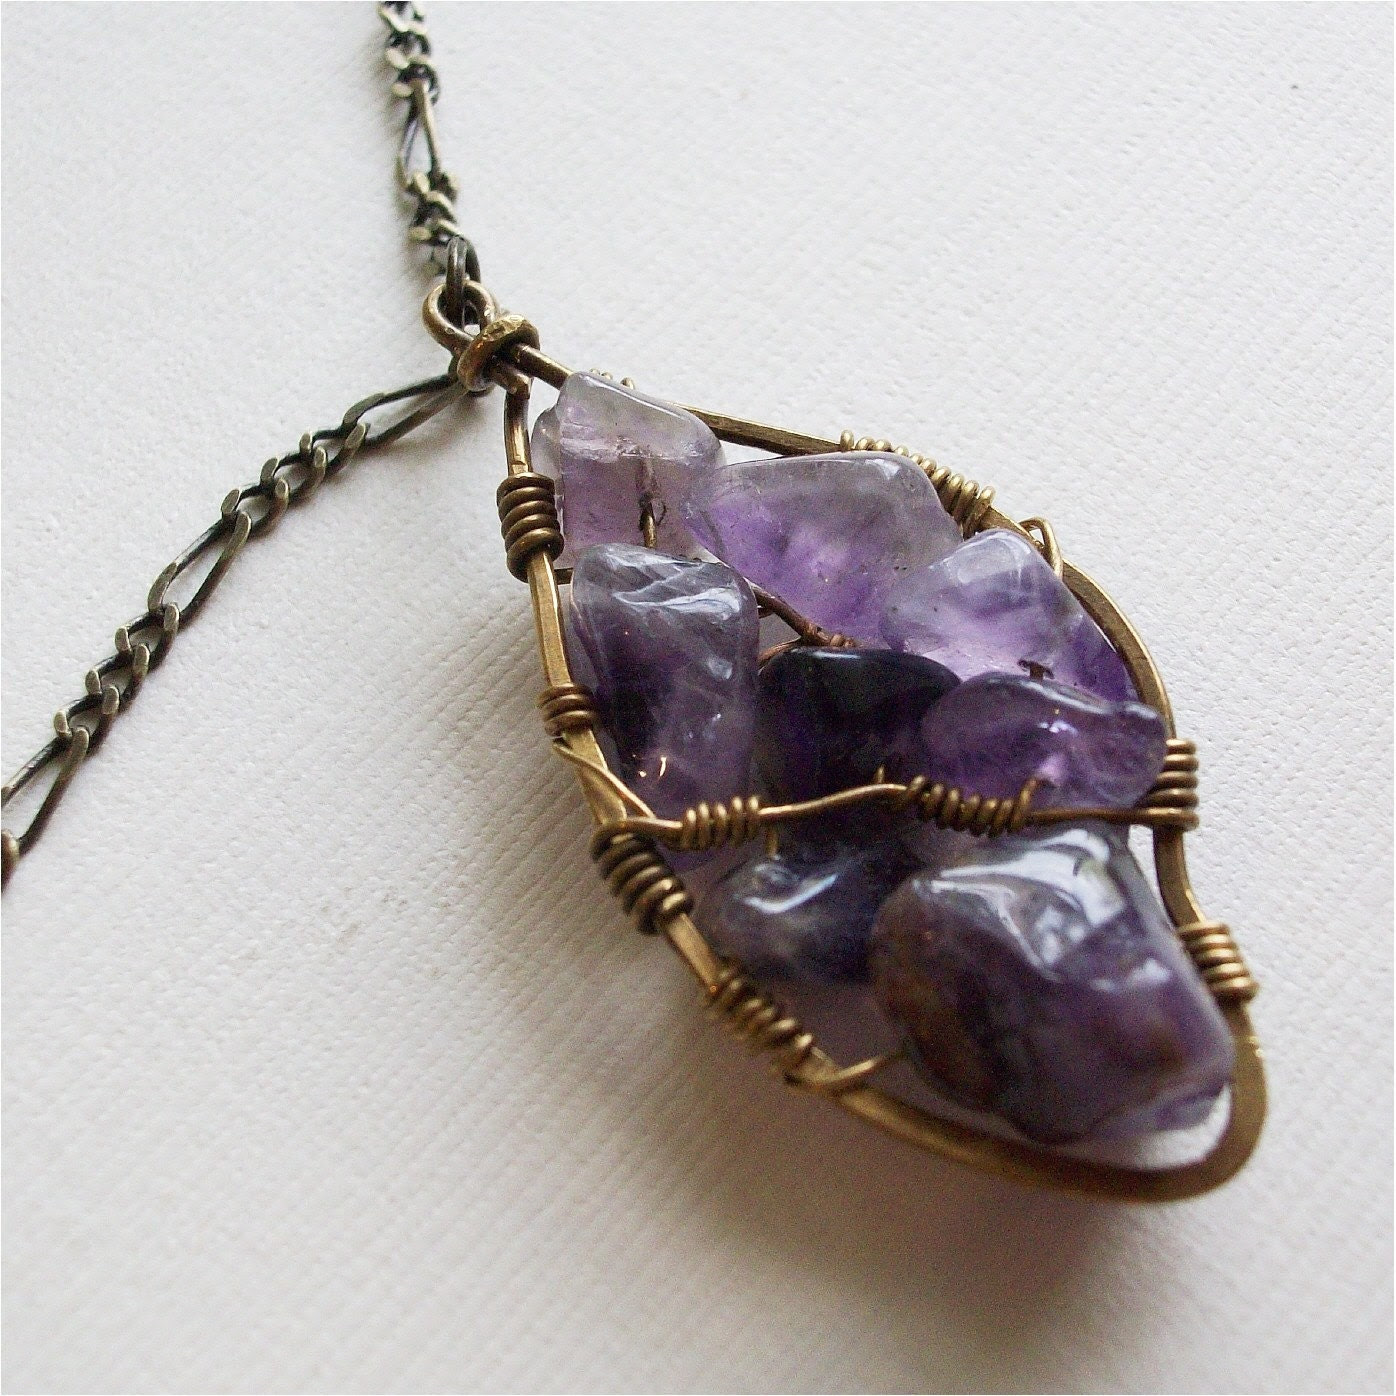 Purple Amethyst Leaf Necklace, handmade pendant on antiqued brass chain, FREE SHIPPING ETSY